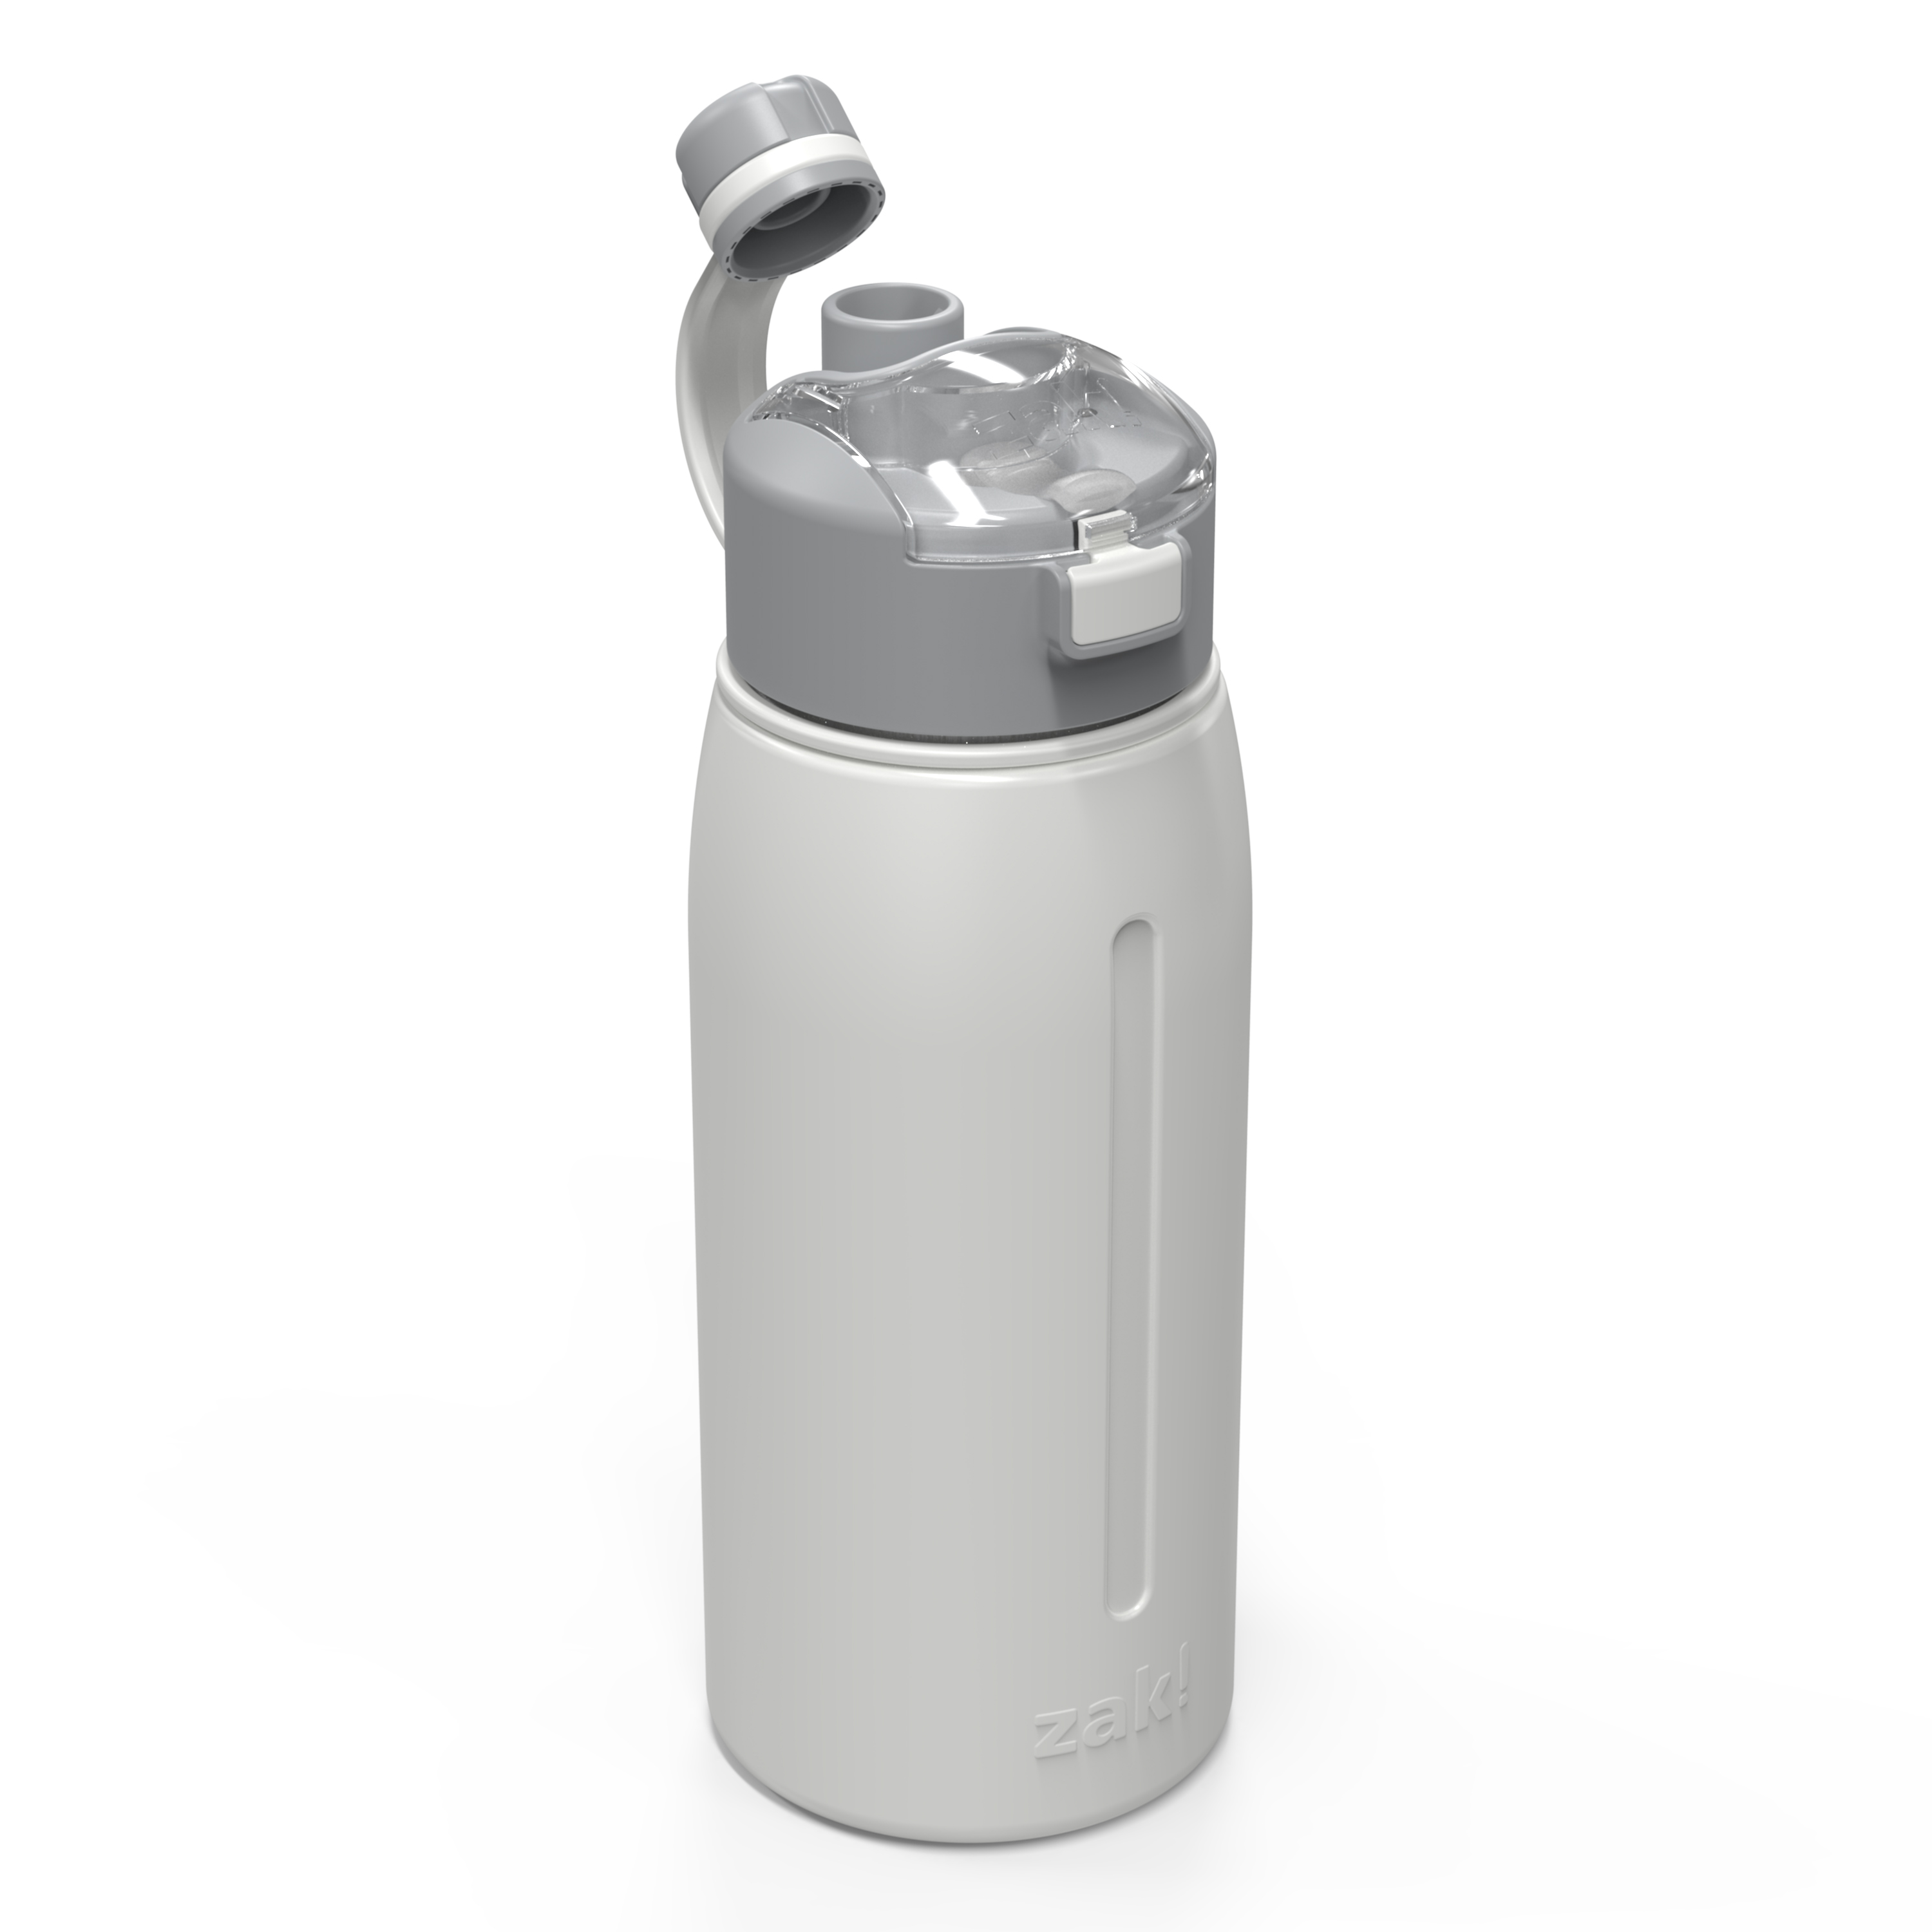 Genesis 24 ounce Vacuum Insulated Stainless Steel Tumbler, Gray slideshow image 3